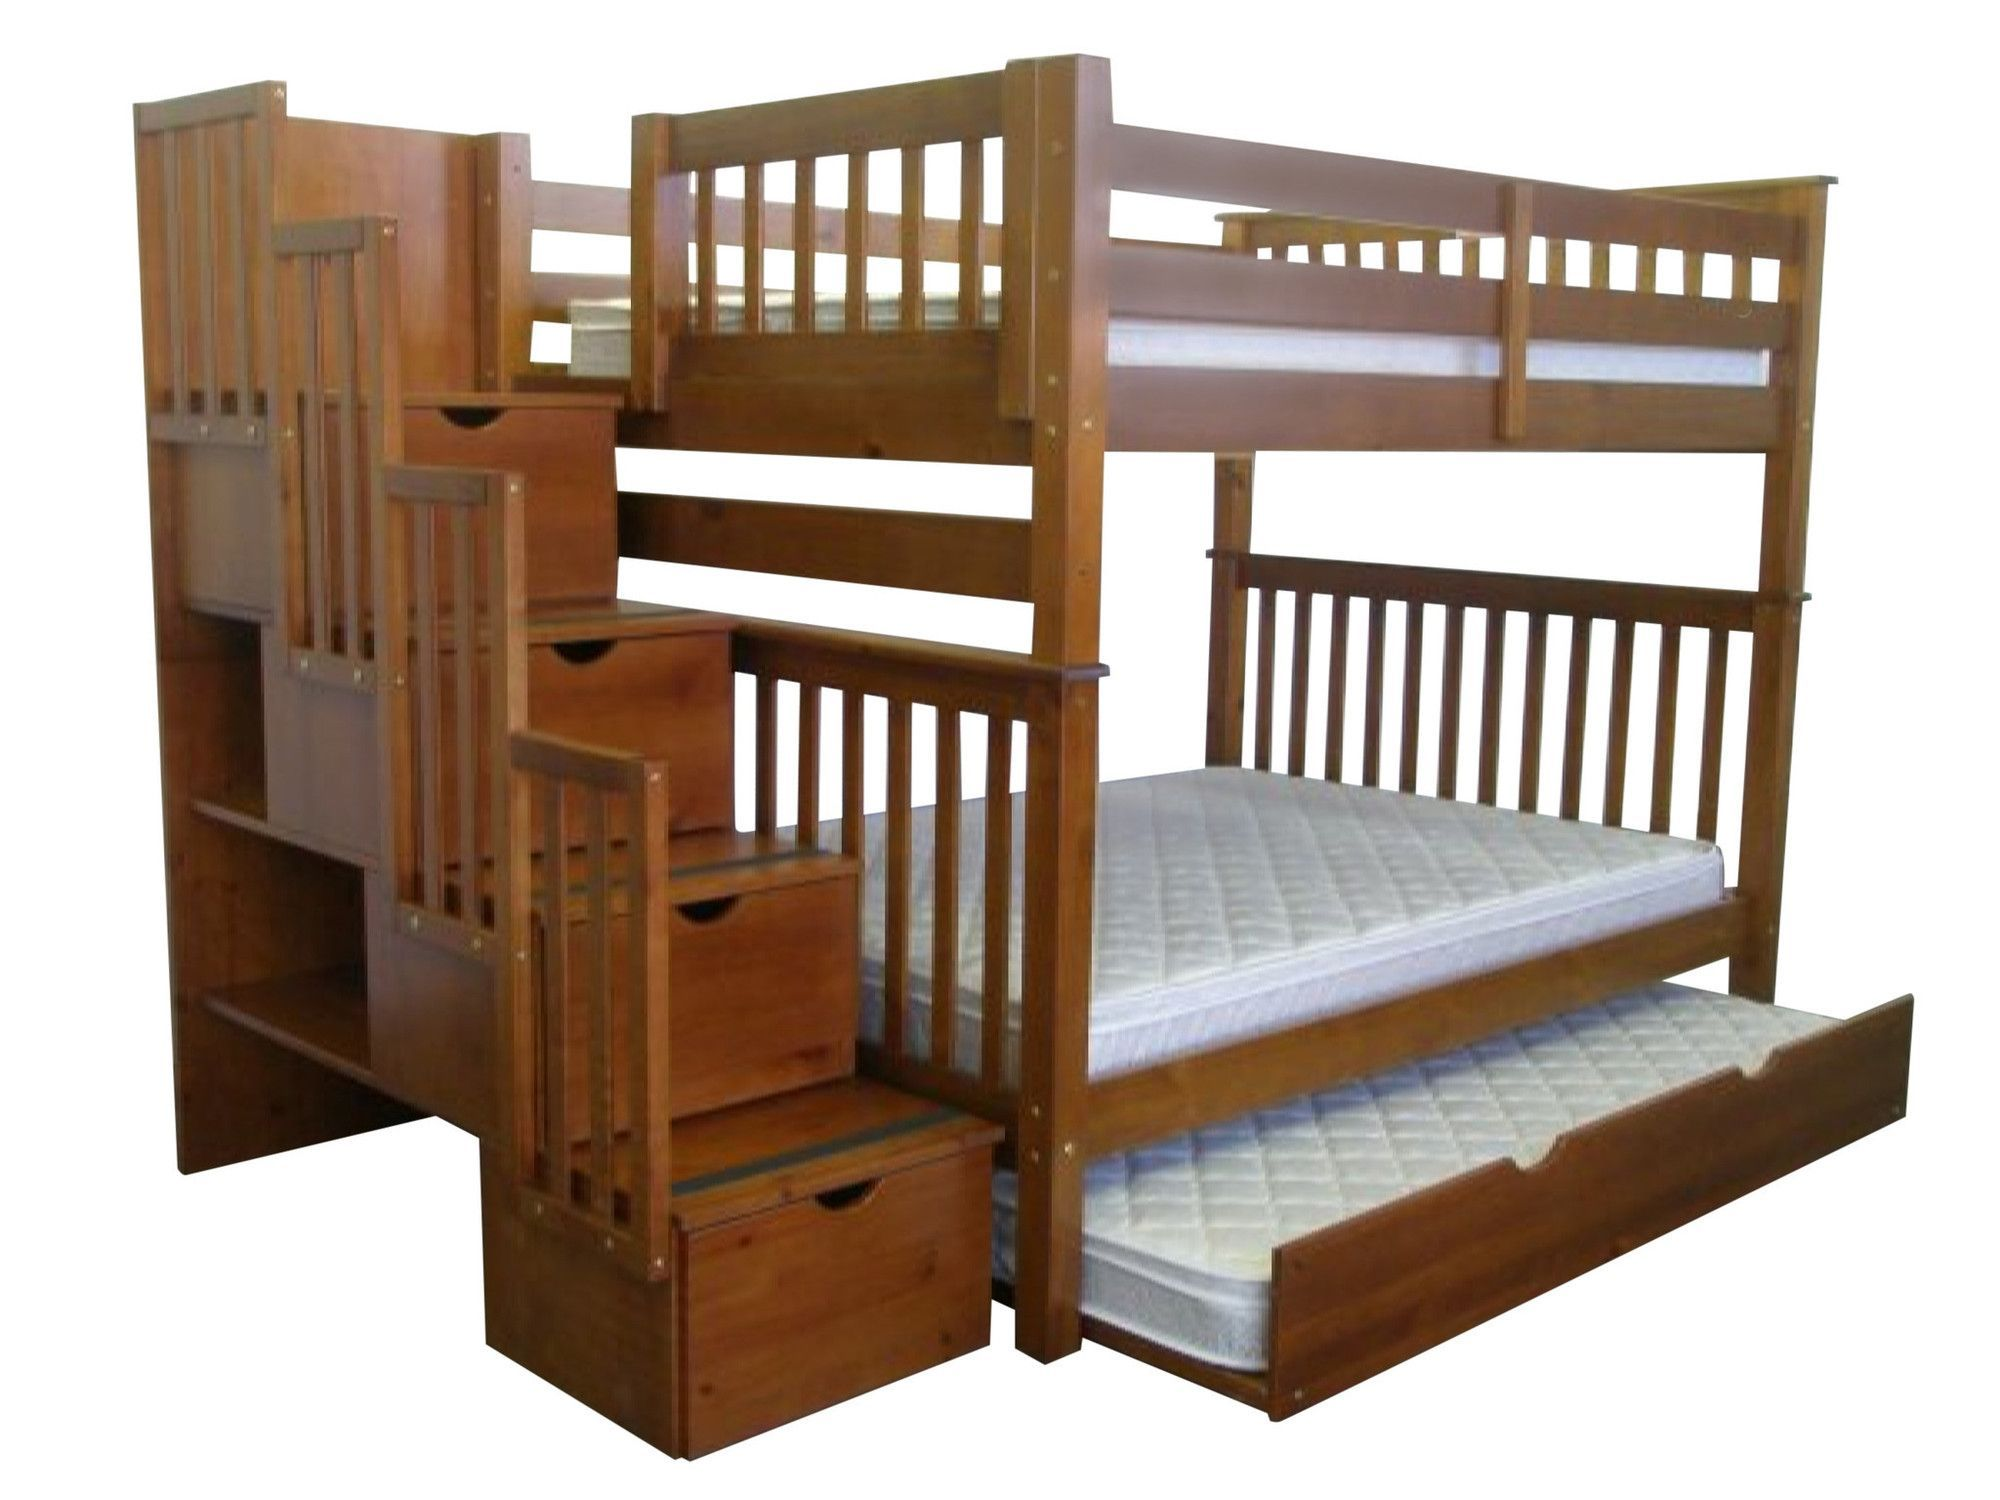 Loft bed plans full size  Full over Full Bunk Bed with Trundle More  House decor  Pinterest